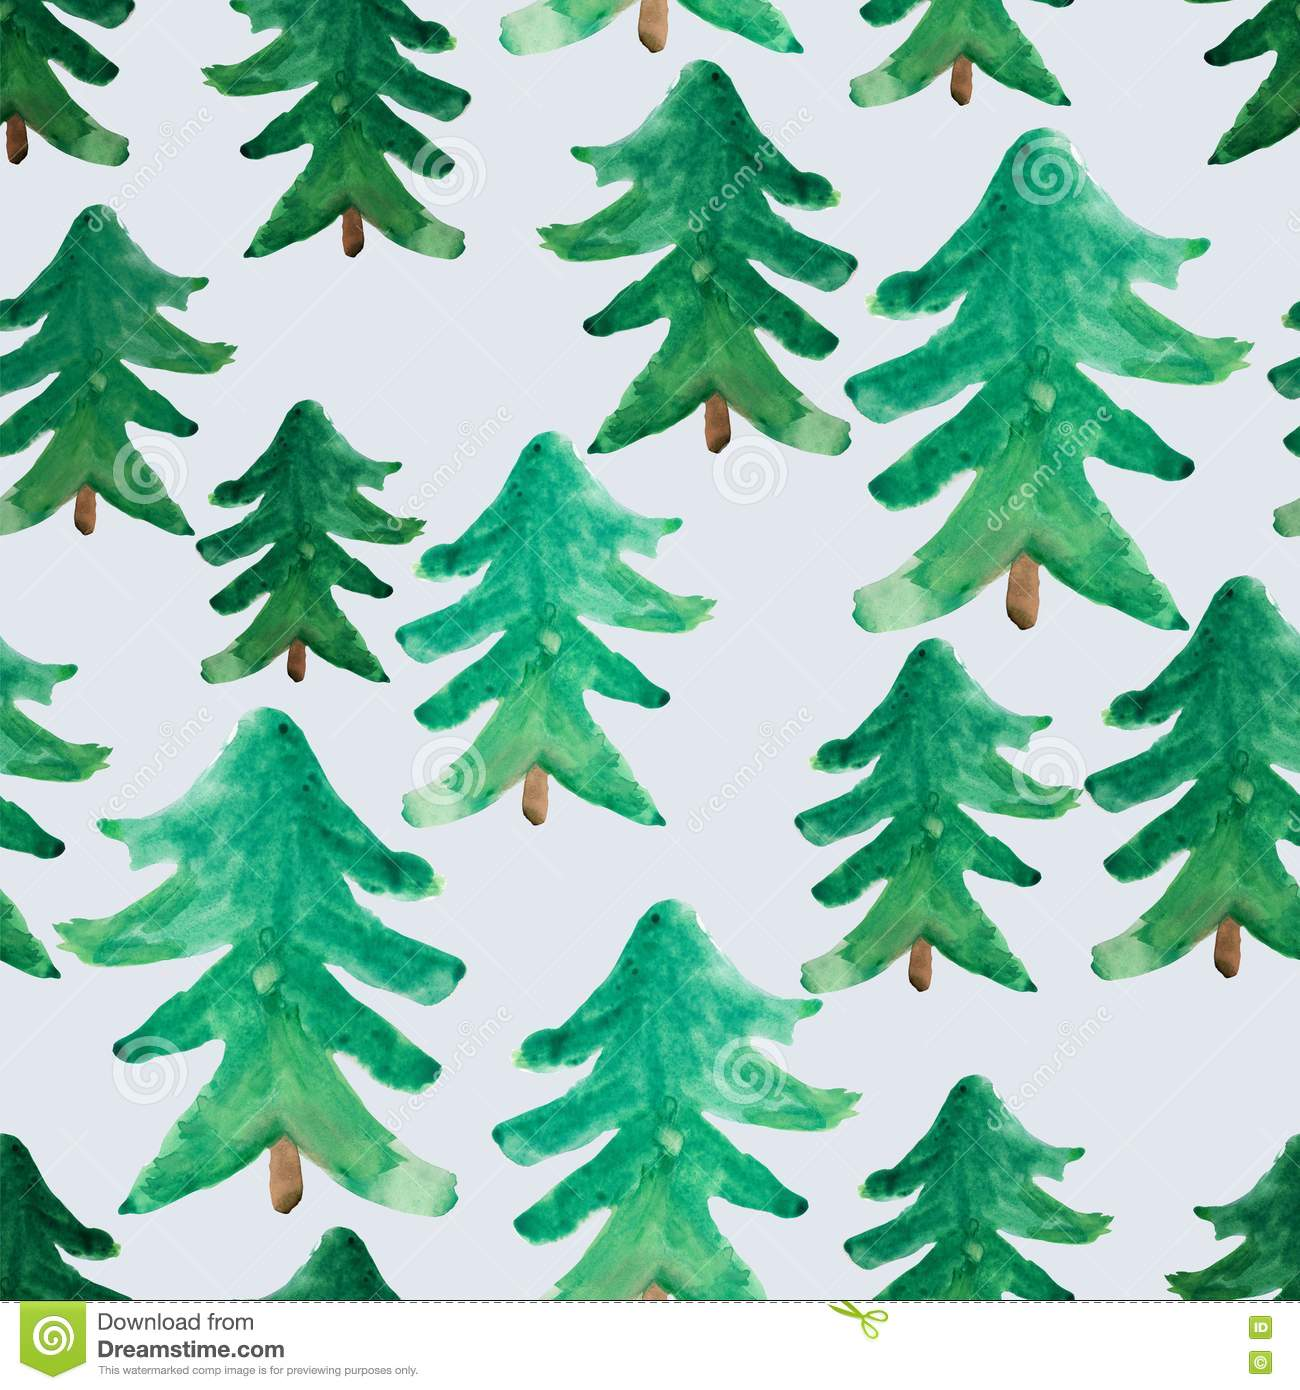 1300x1390 - Christmas Trees Backgrounds 45